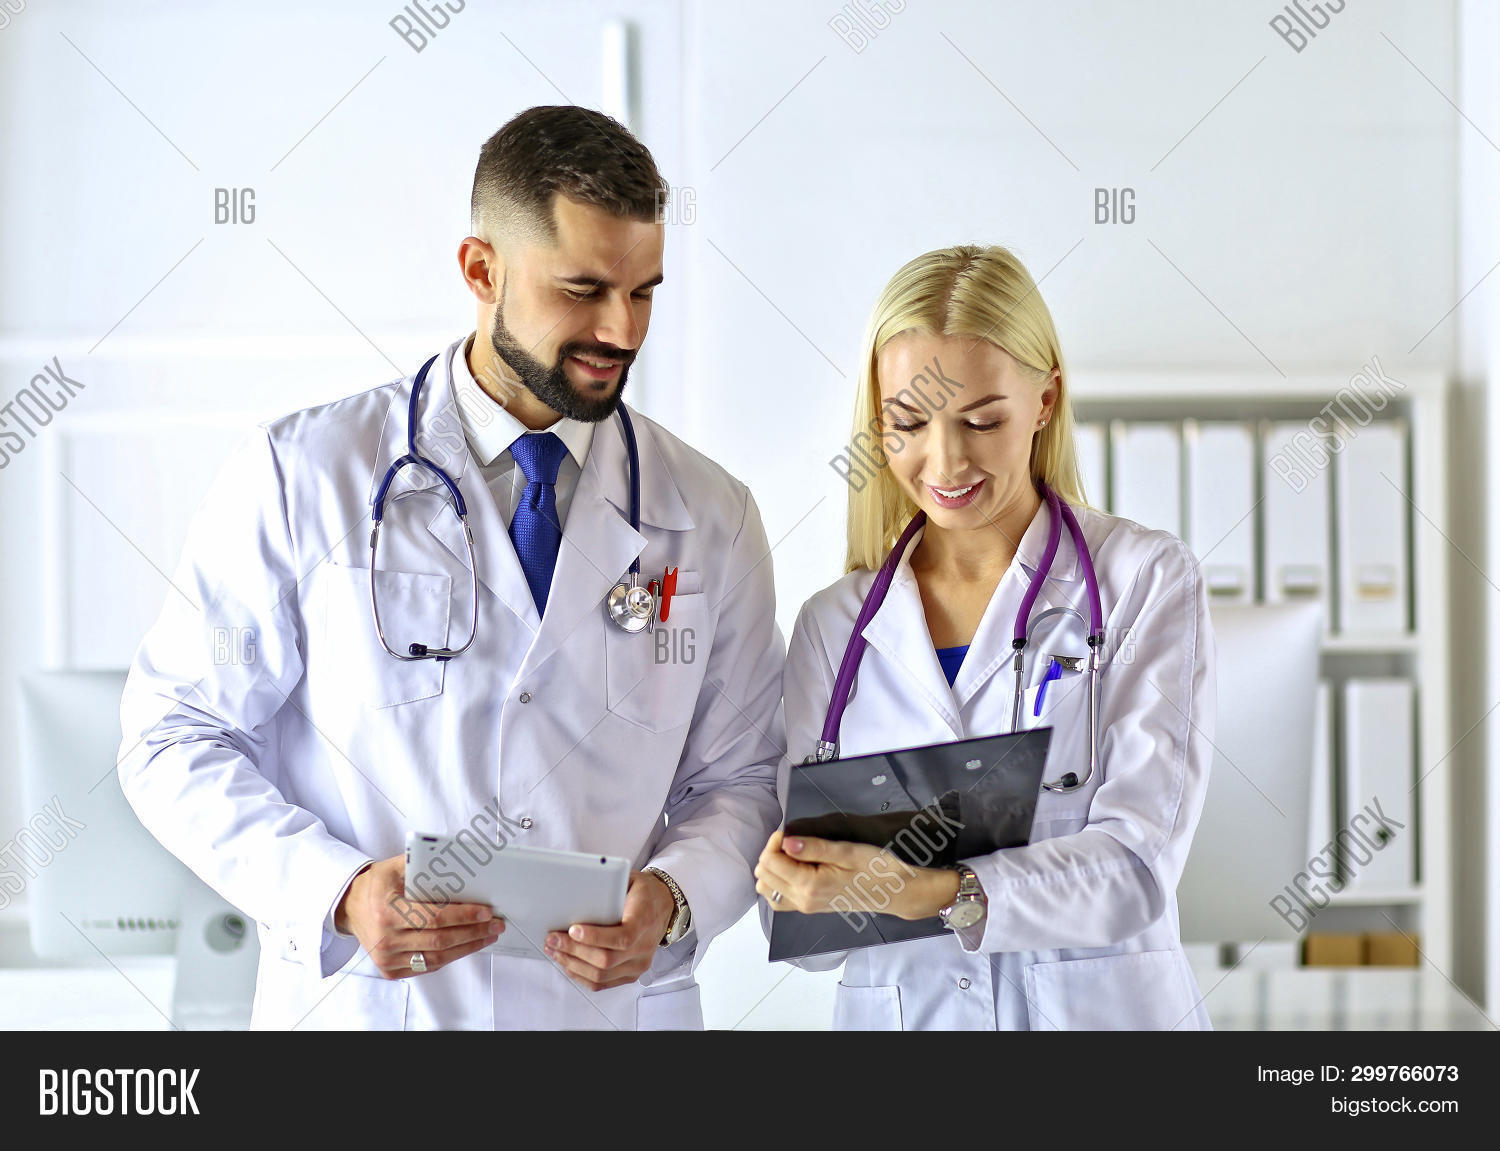 beautiful,cardiologist,clinic,clipboard,colleagues,computer,confident,consultant,discuss,discussion,doc,doctors,expert,female,friendly,group,hands,health,hold,intelligent,italian,latin-american,male,man,medic,medical,medicine,office,people,person,physician,point,positivity,practitioner,robe,smart,smiling,specialist,staff,stethoscope,talk,team,teamwork,trust,two,uniform,white,woman,worker,young